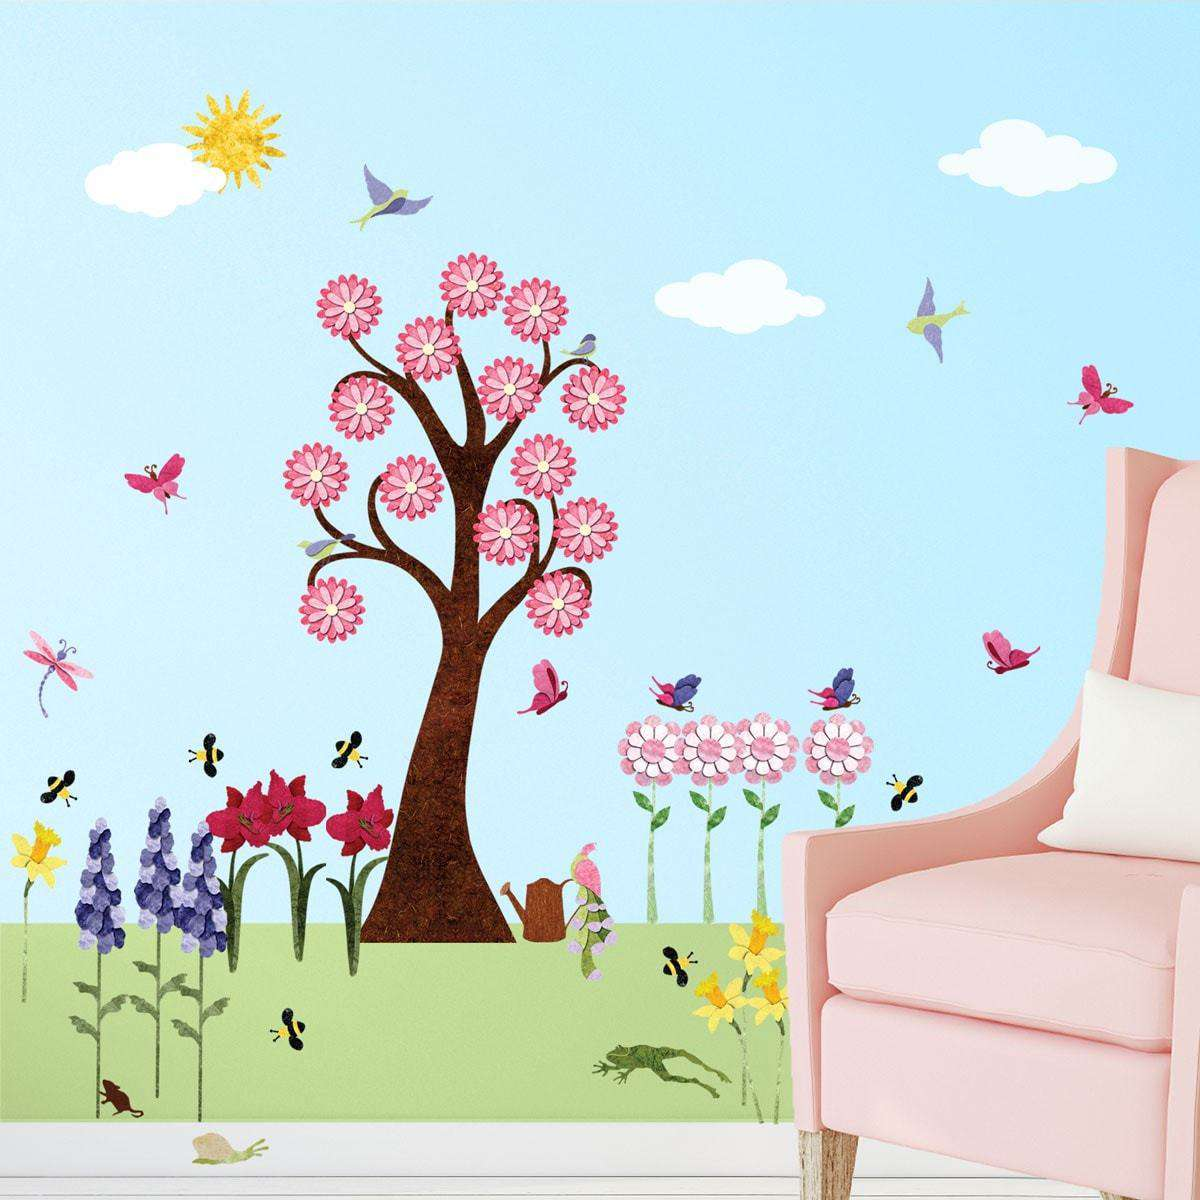 Flower wall decals for girls room peel stick flower stickers flower wall decals for girls room peel stick flower stickers large tree decal amipublicfo Gallery